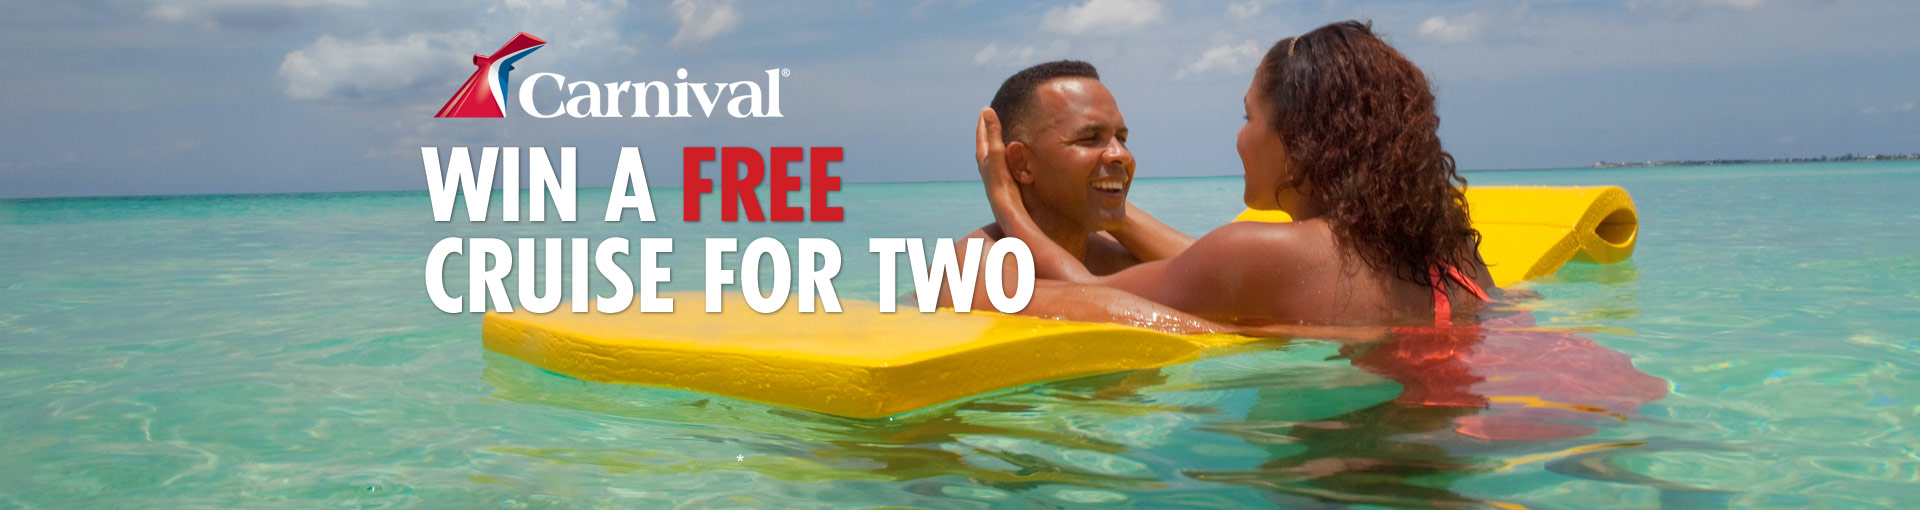 Win a Free Carnival Cruise for Two